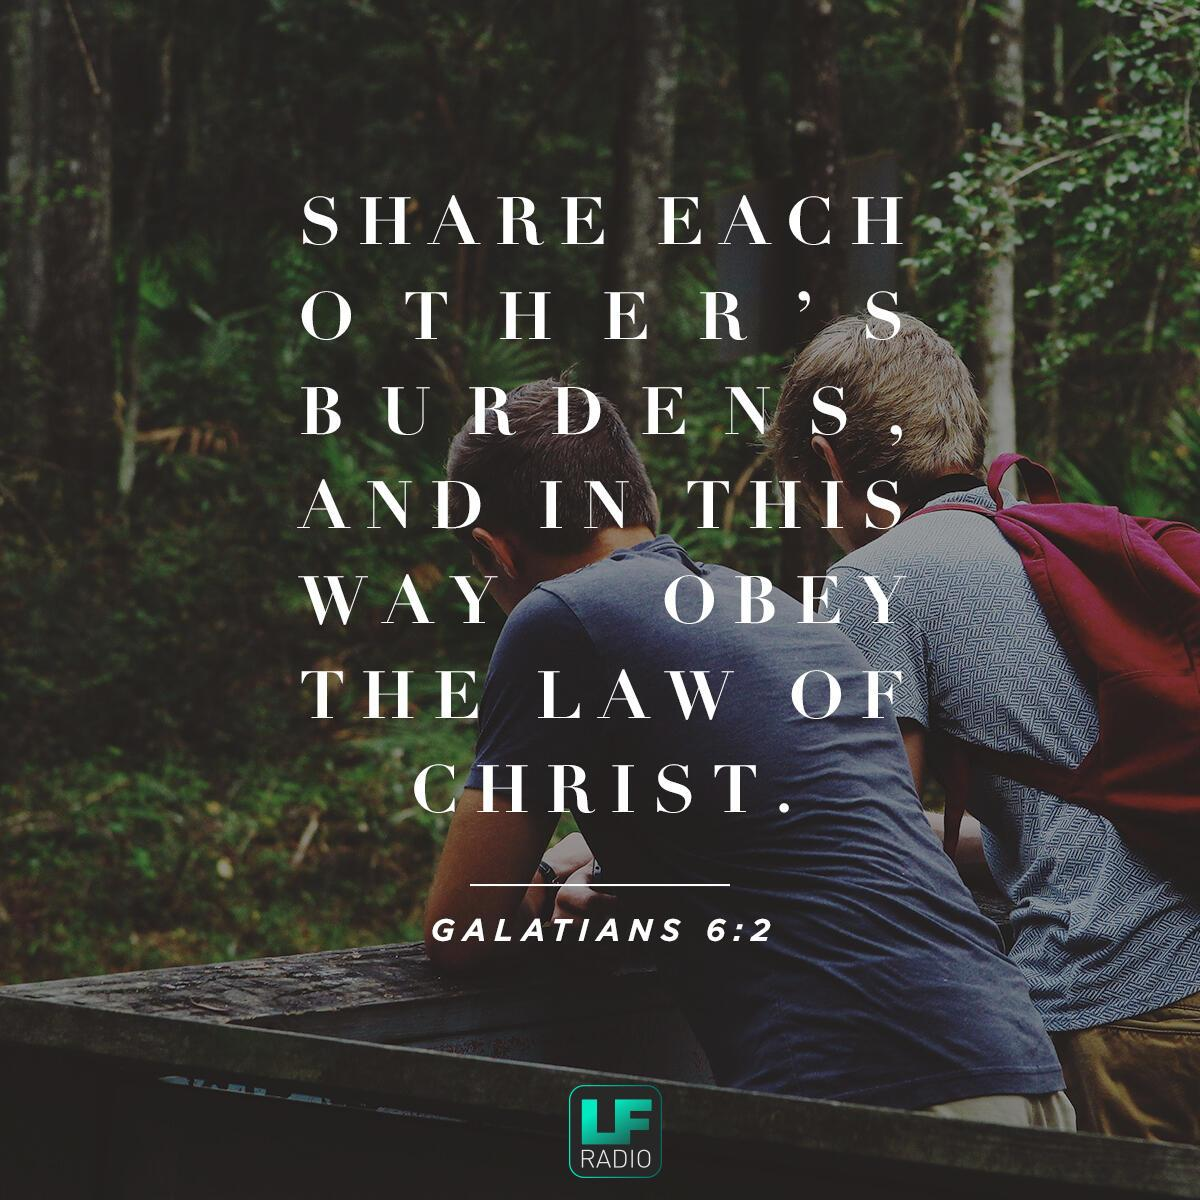 Galatians 6:2 - Verse of the Day